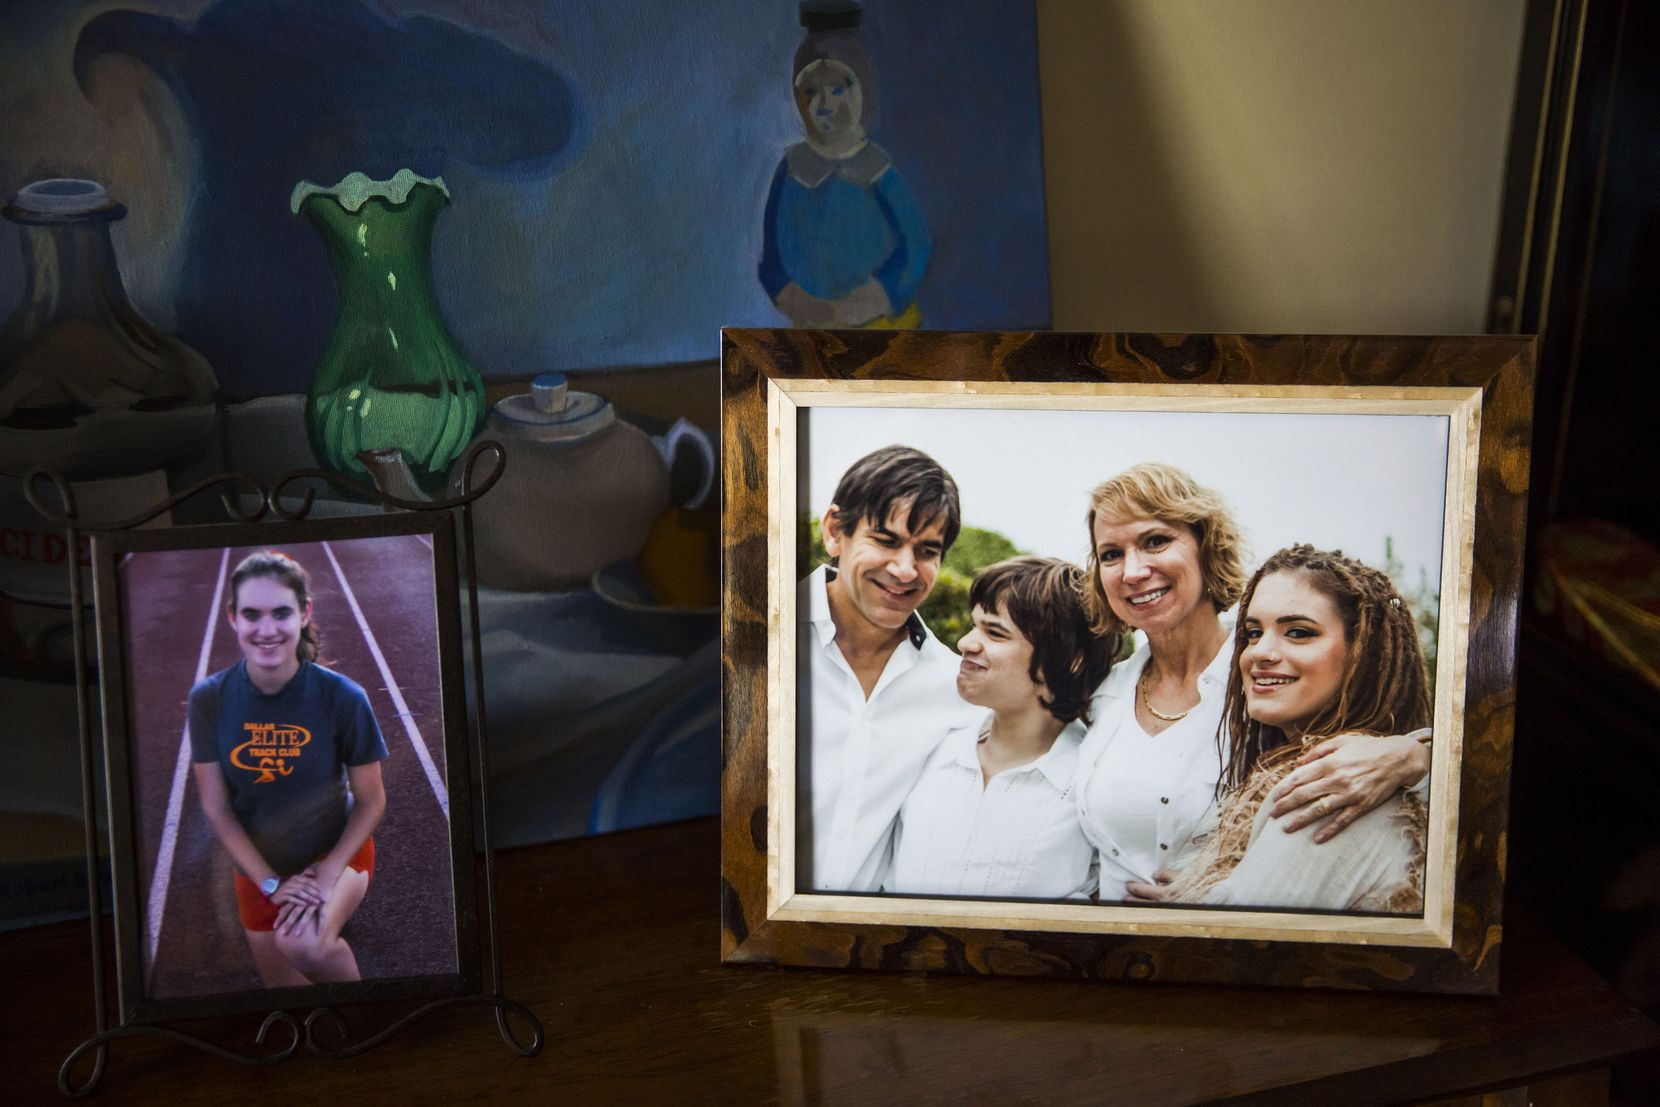 A framed photo in the family's home shows the Zartlers and their twin daughters. (Smiley N. Pool/The Dallas Morning News)